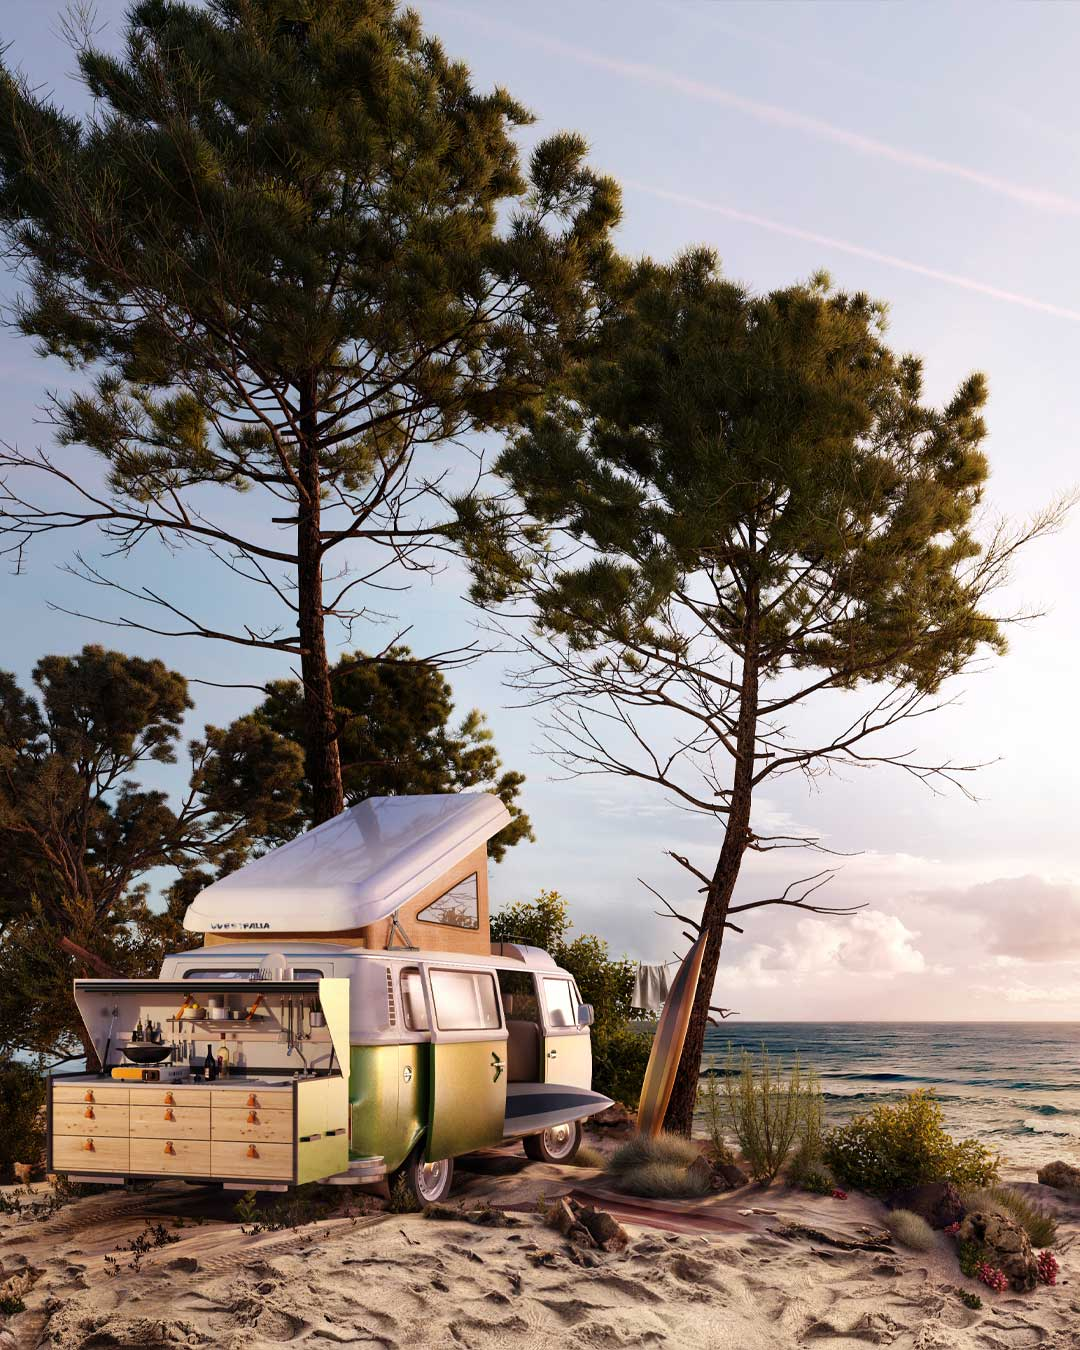 3d product rendering of a camper van on a Mediterranean beach with pine trees.